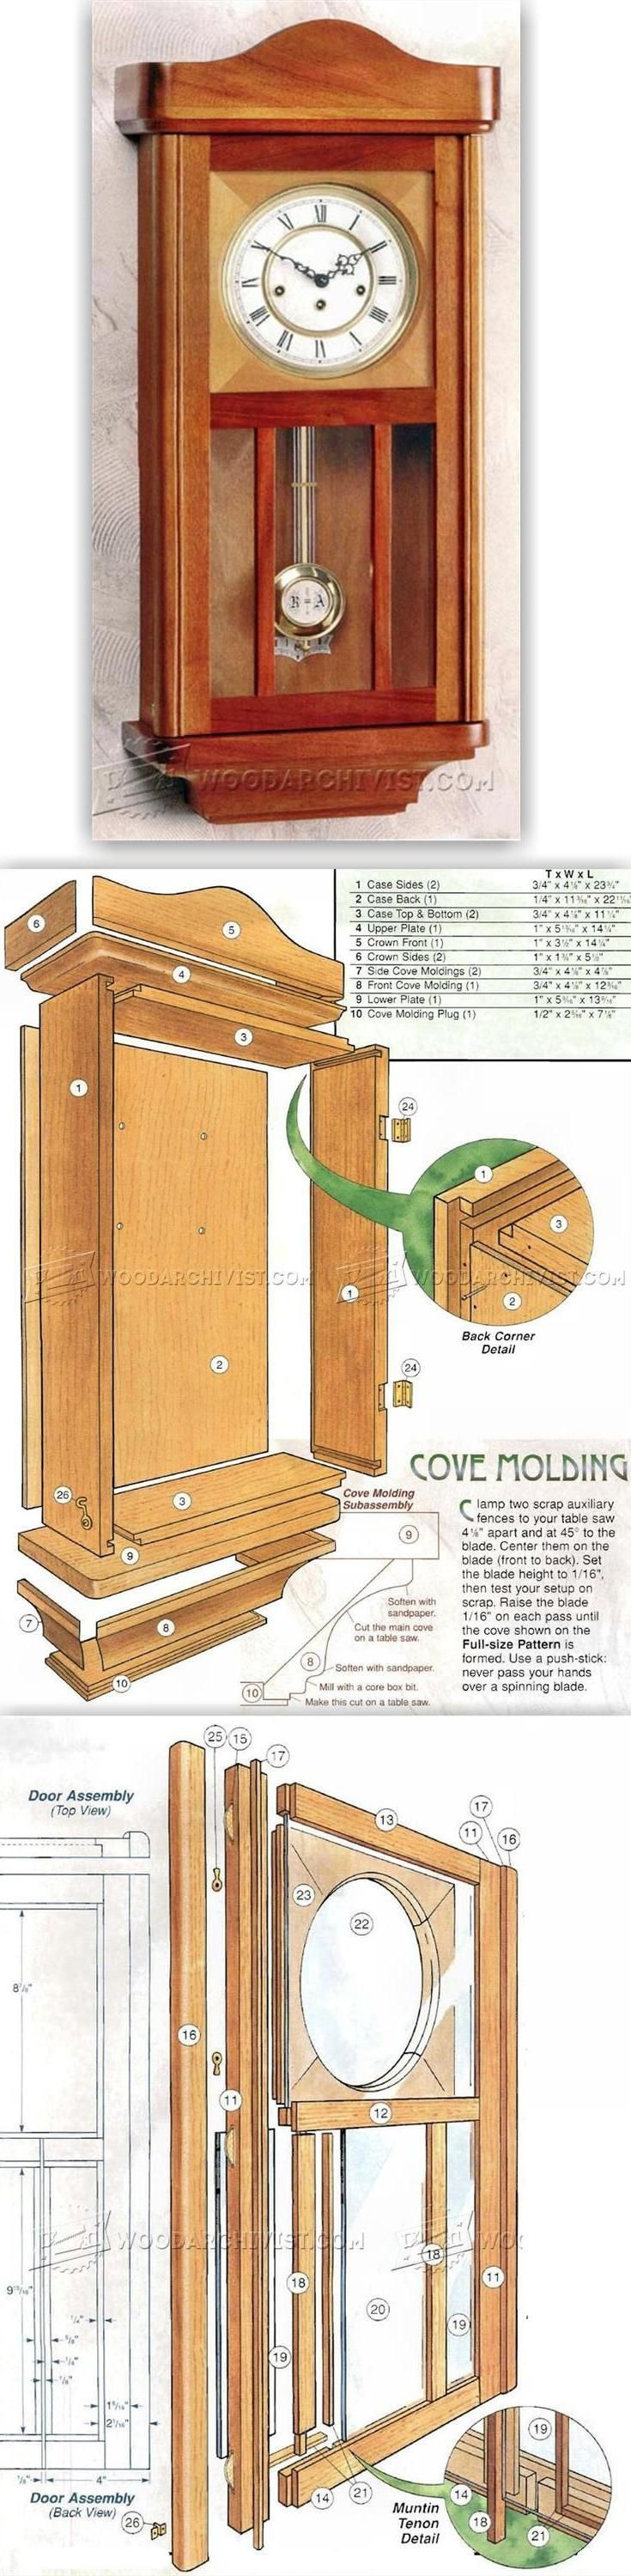 wall clock plans - woodworking plans and projects | woodarchivist